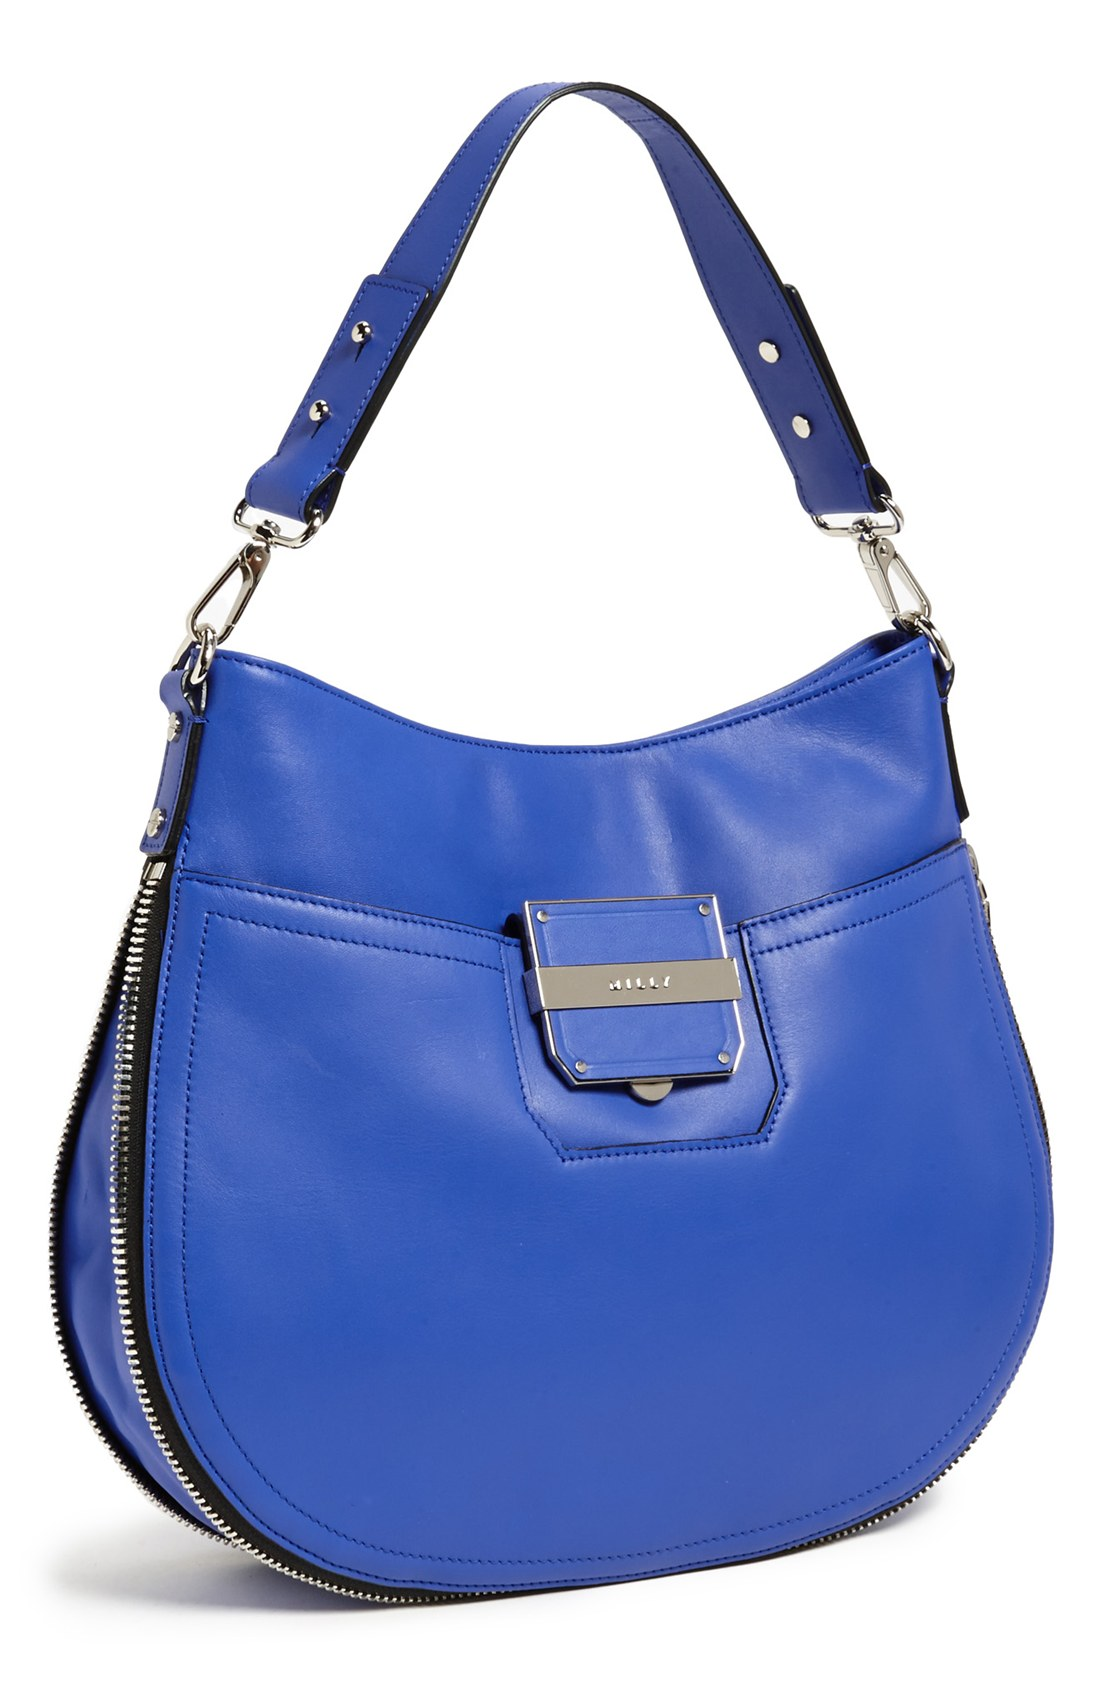 Milly Colby Leather Bucket Bag in Blue